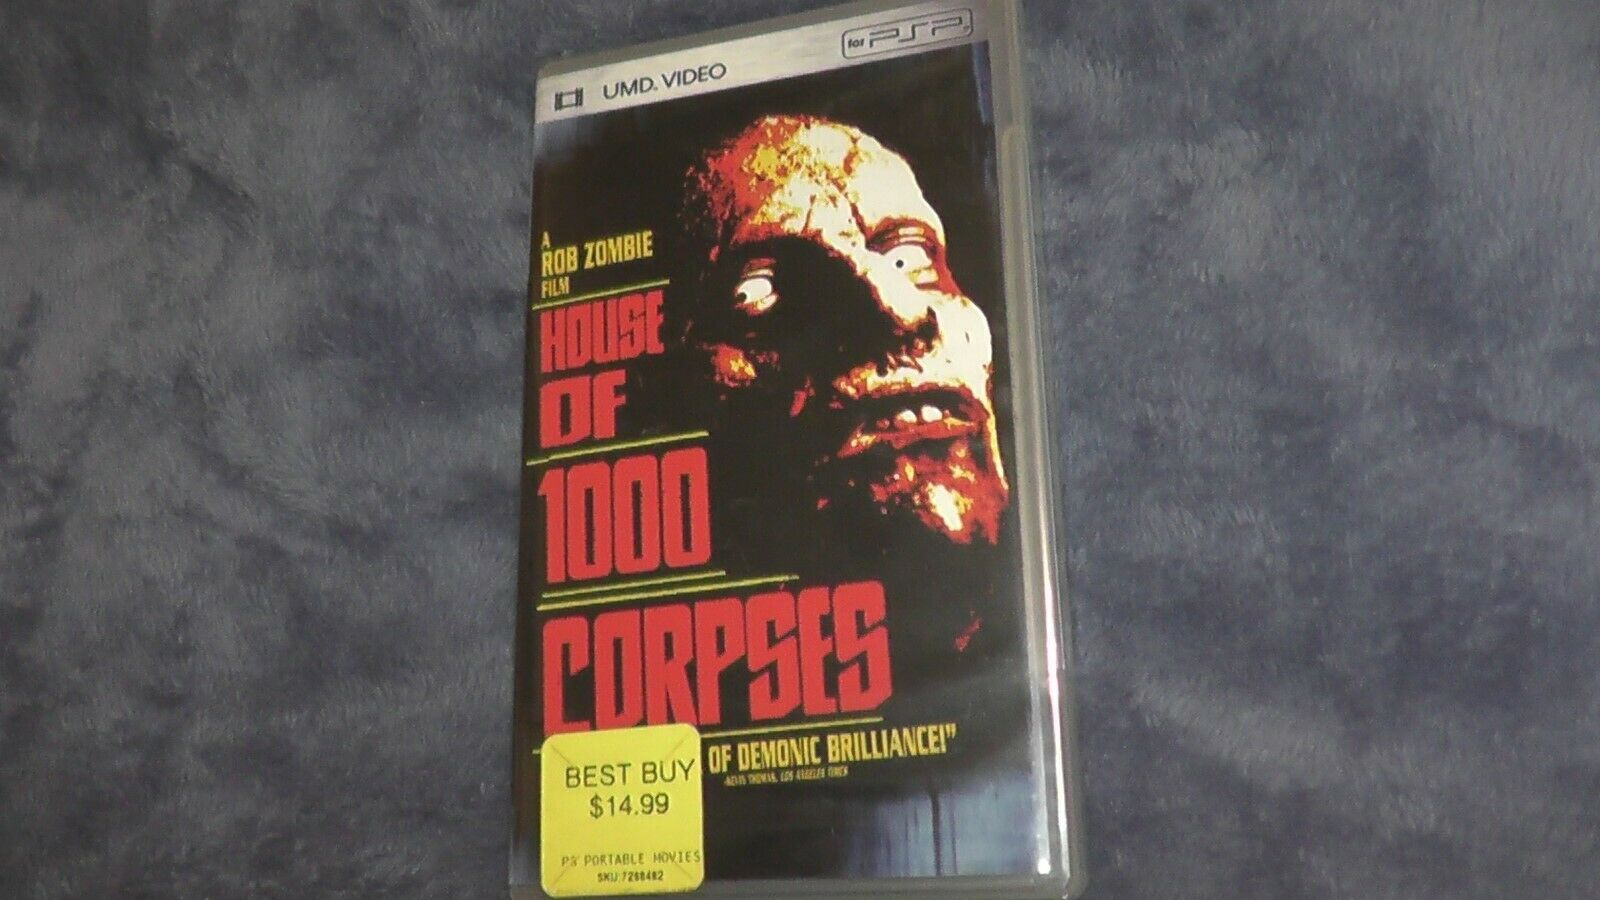 House Of 1000 Corpses Umd 2005 For Sale Online Ebay